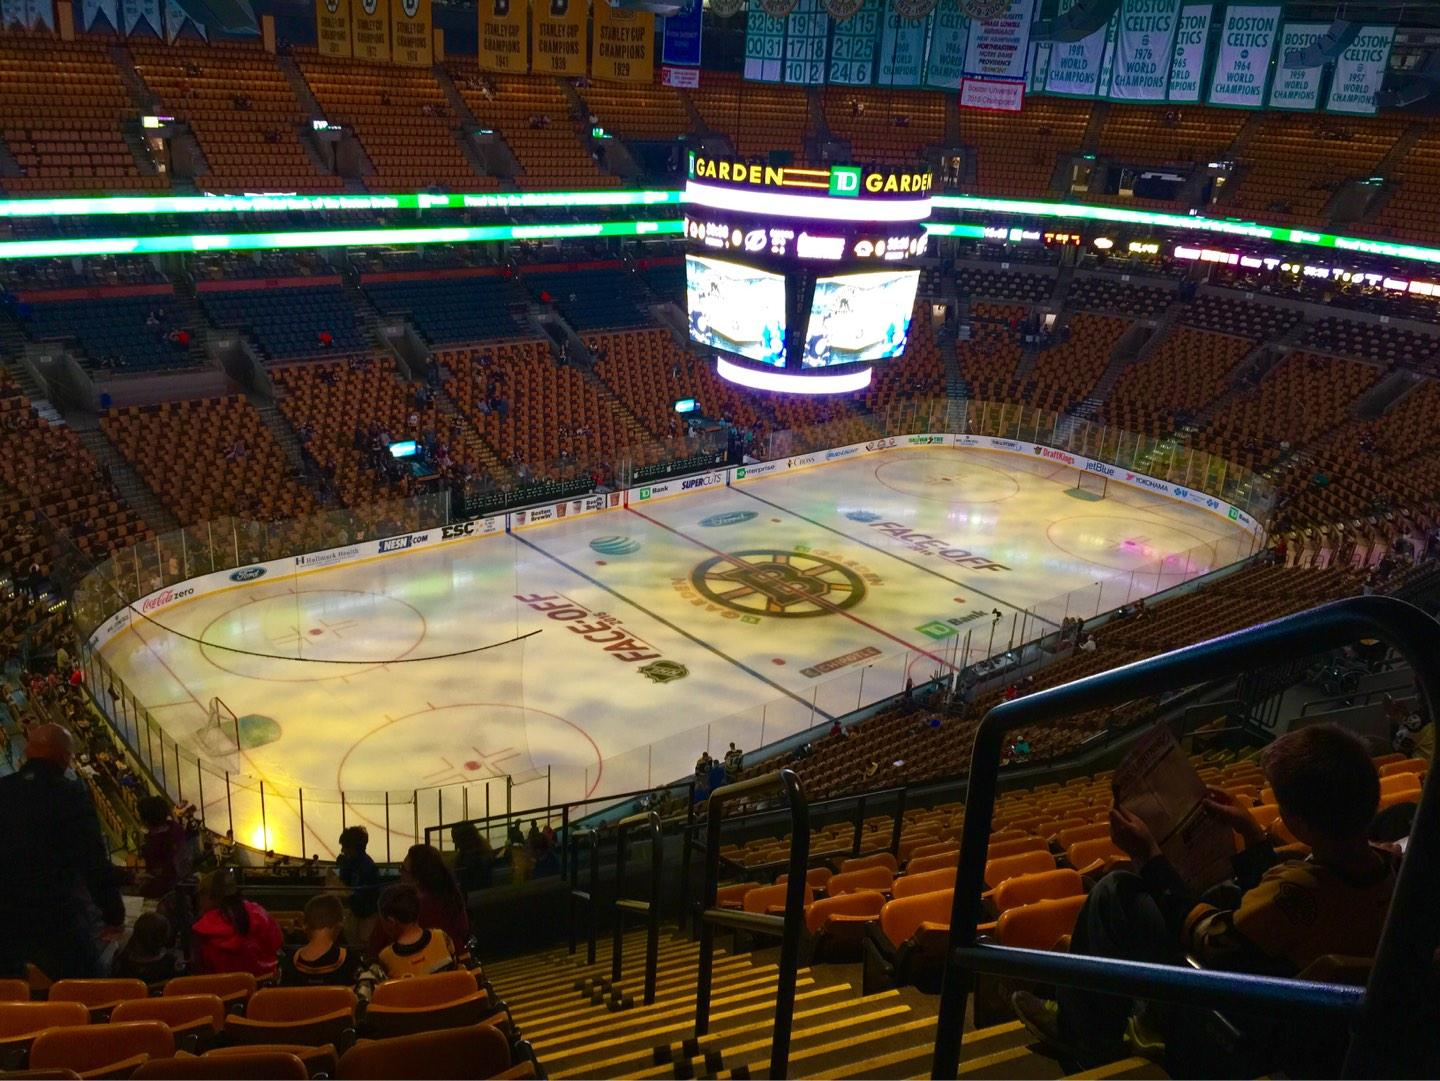 Boston Bruins Seat View for TD Garden Section 319, Row 15, Seat 27